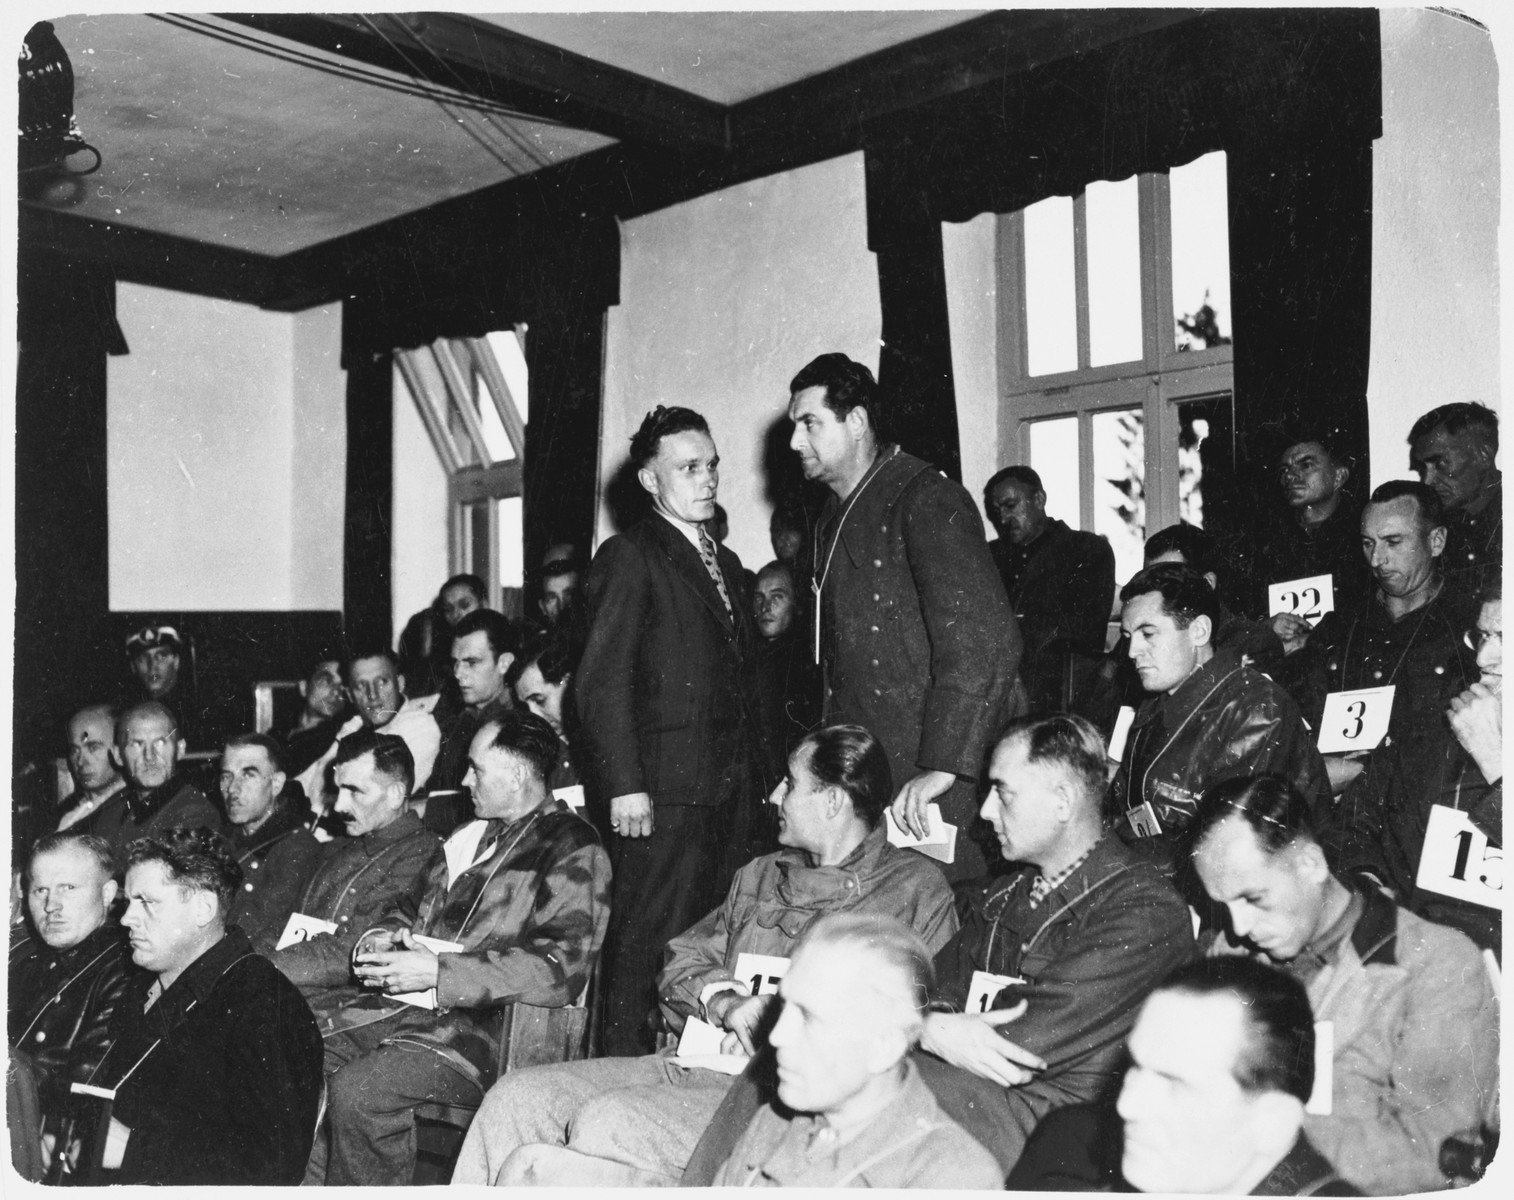 Dr. Franz Blaha, a former camp inmate, confronts Dachau commandant Martin Gottfried Weiss in the prisoner's dock.  Weiss was in charge when Blaha was forced to perform autopsies on victims of camp doctors.